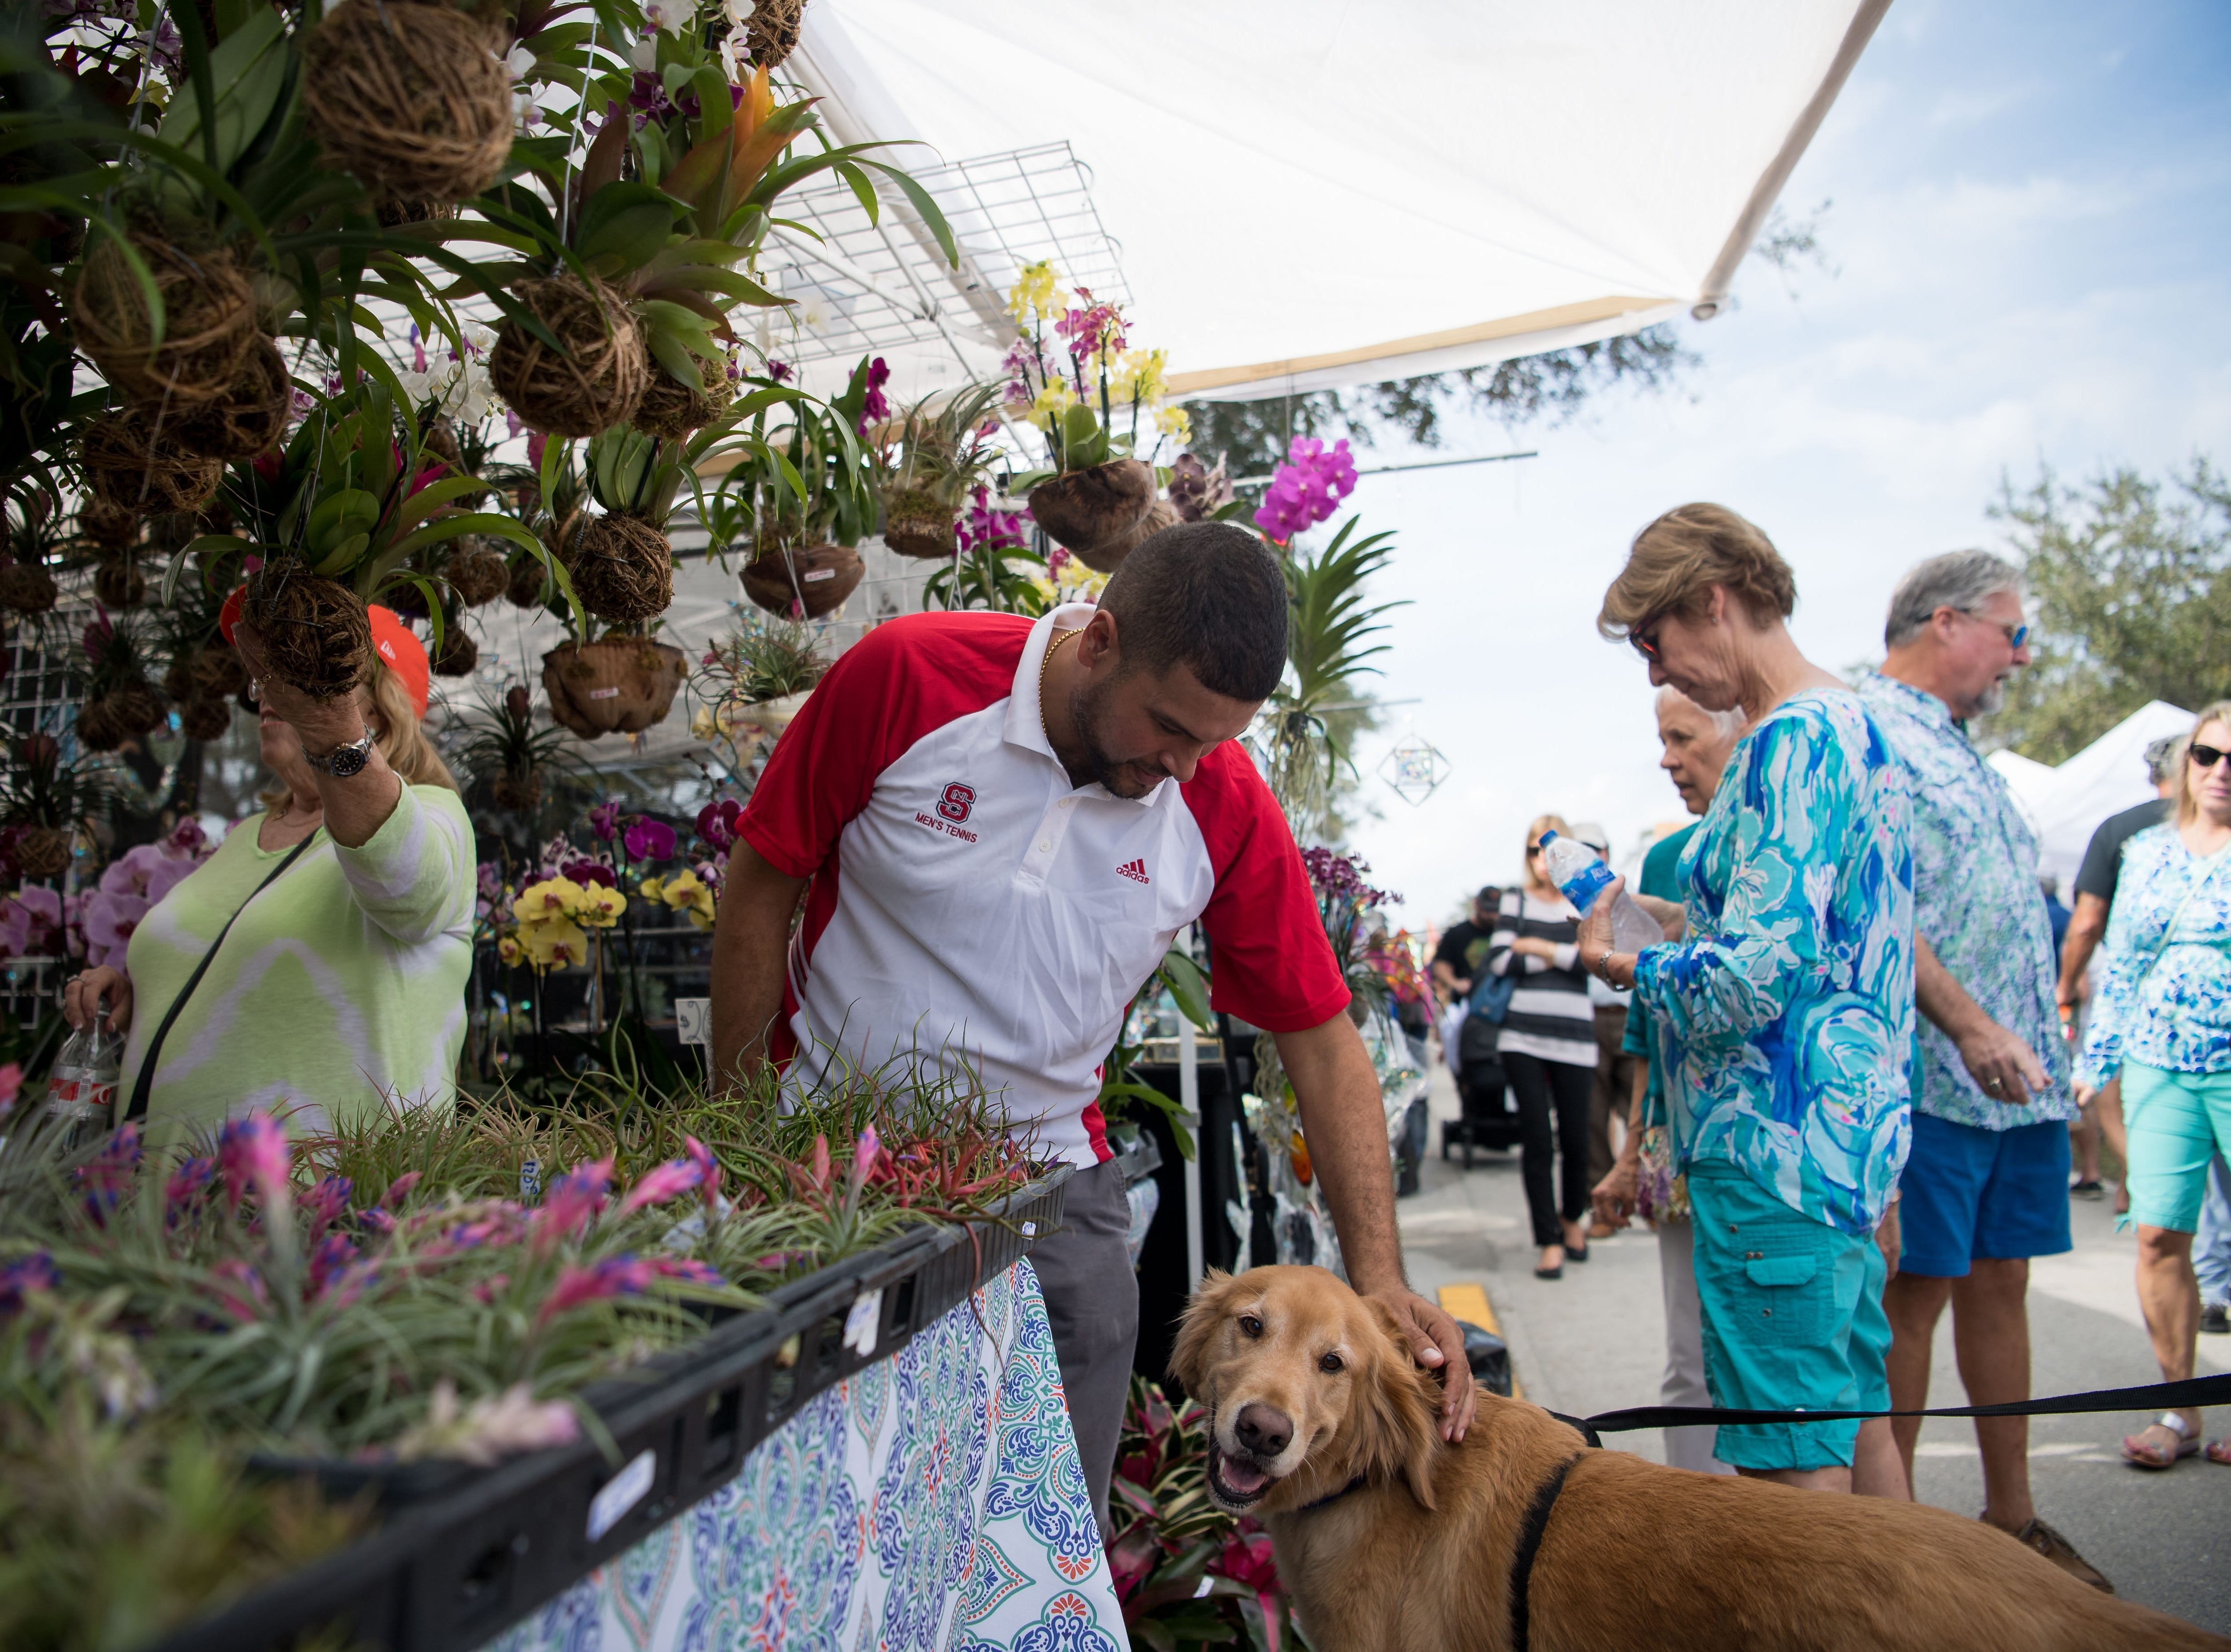 Daniel Hernandez, of Miami, takes a break from tending to orchids and flowers from his nursery to pet Charlie the dog at the 18th annual Hobe Sound Festival of the Arts on Saturday, Feb. 2, 2019, in Hobe Sound.